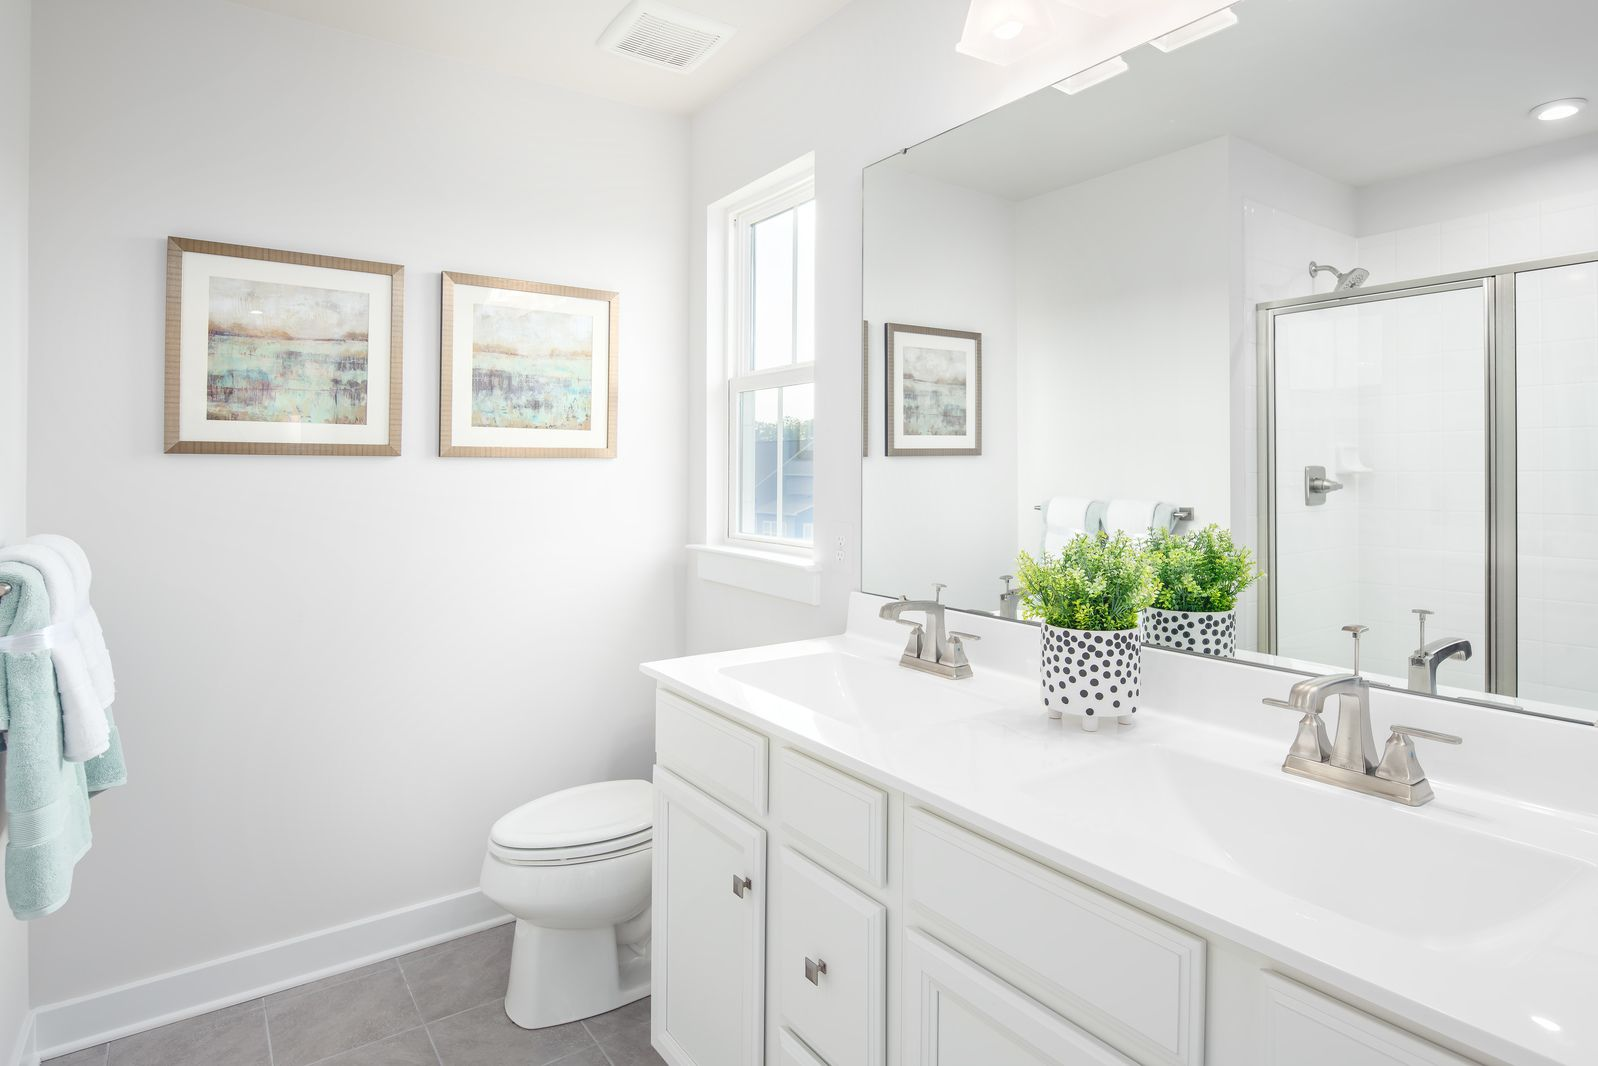 Bathroom featured in the Ballenger By Ryan Homes in Washington, MD